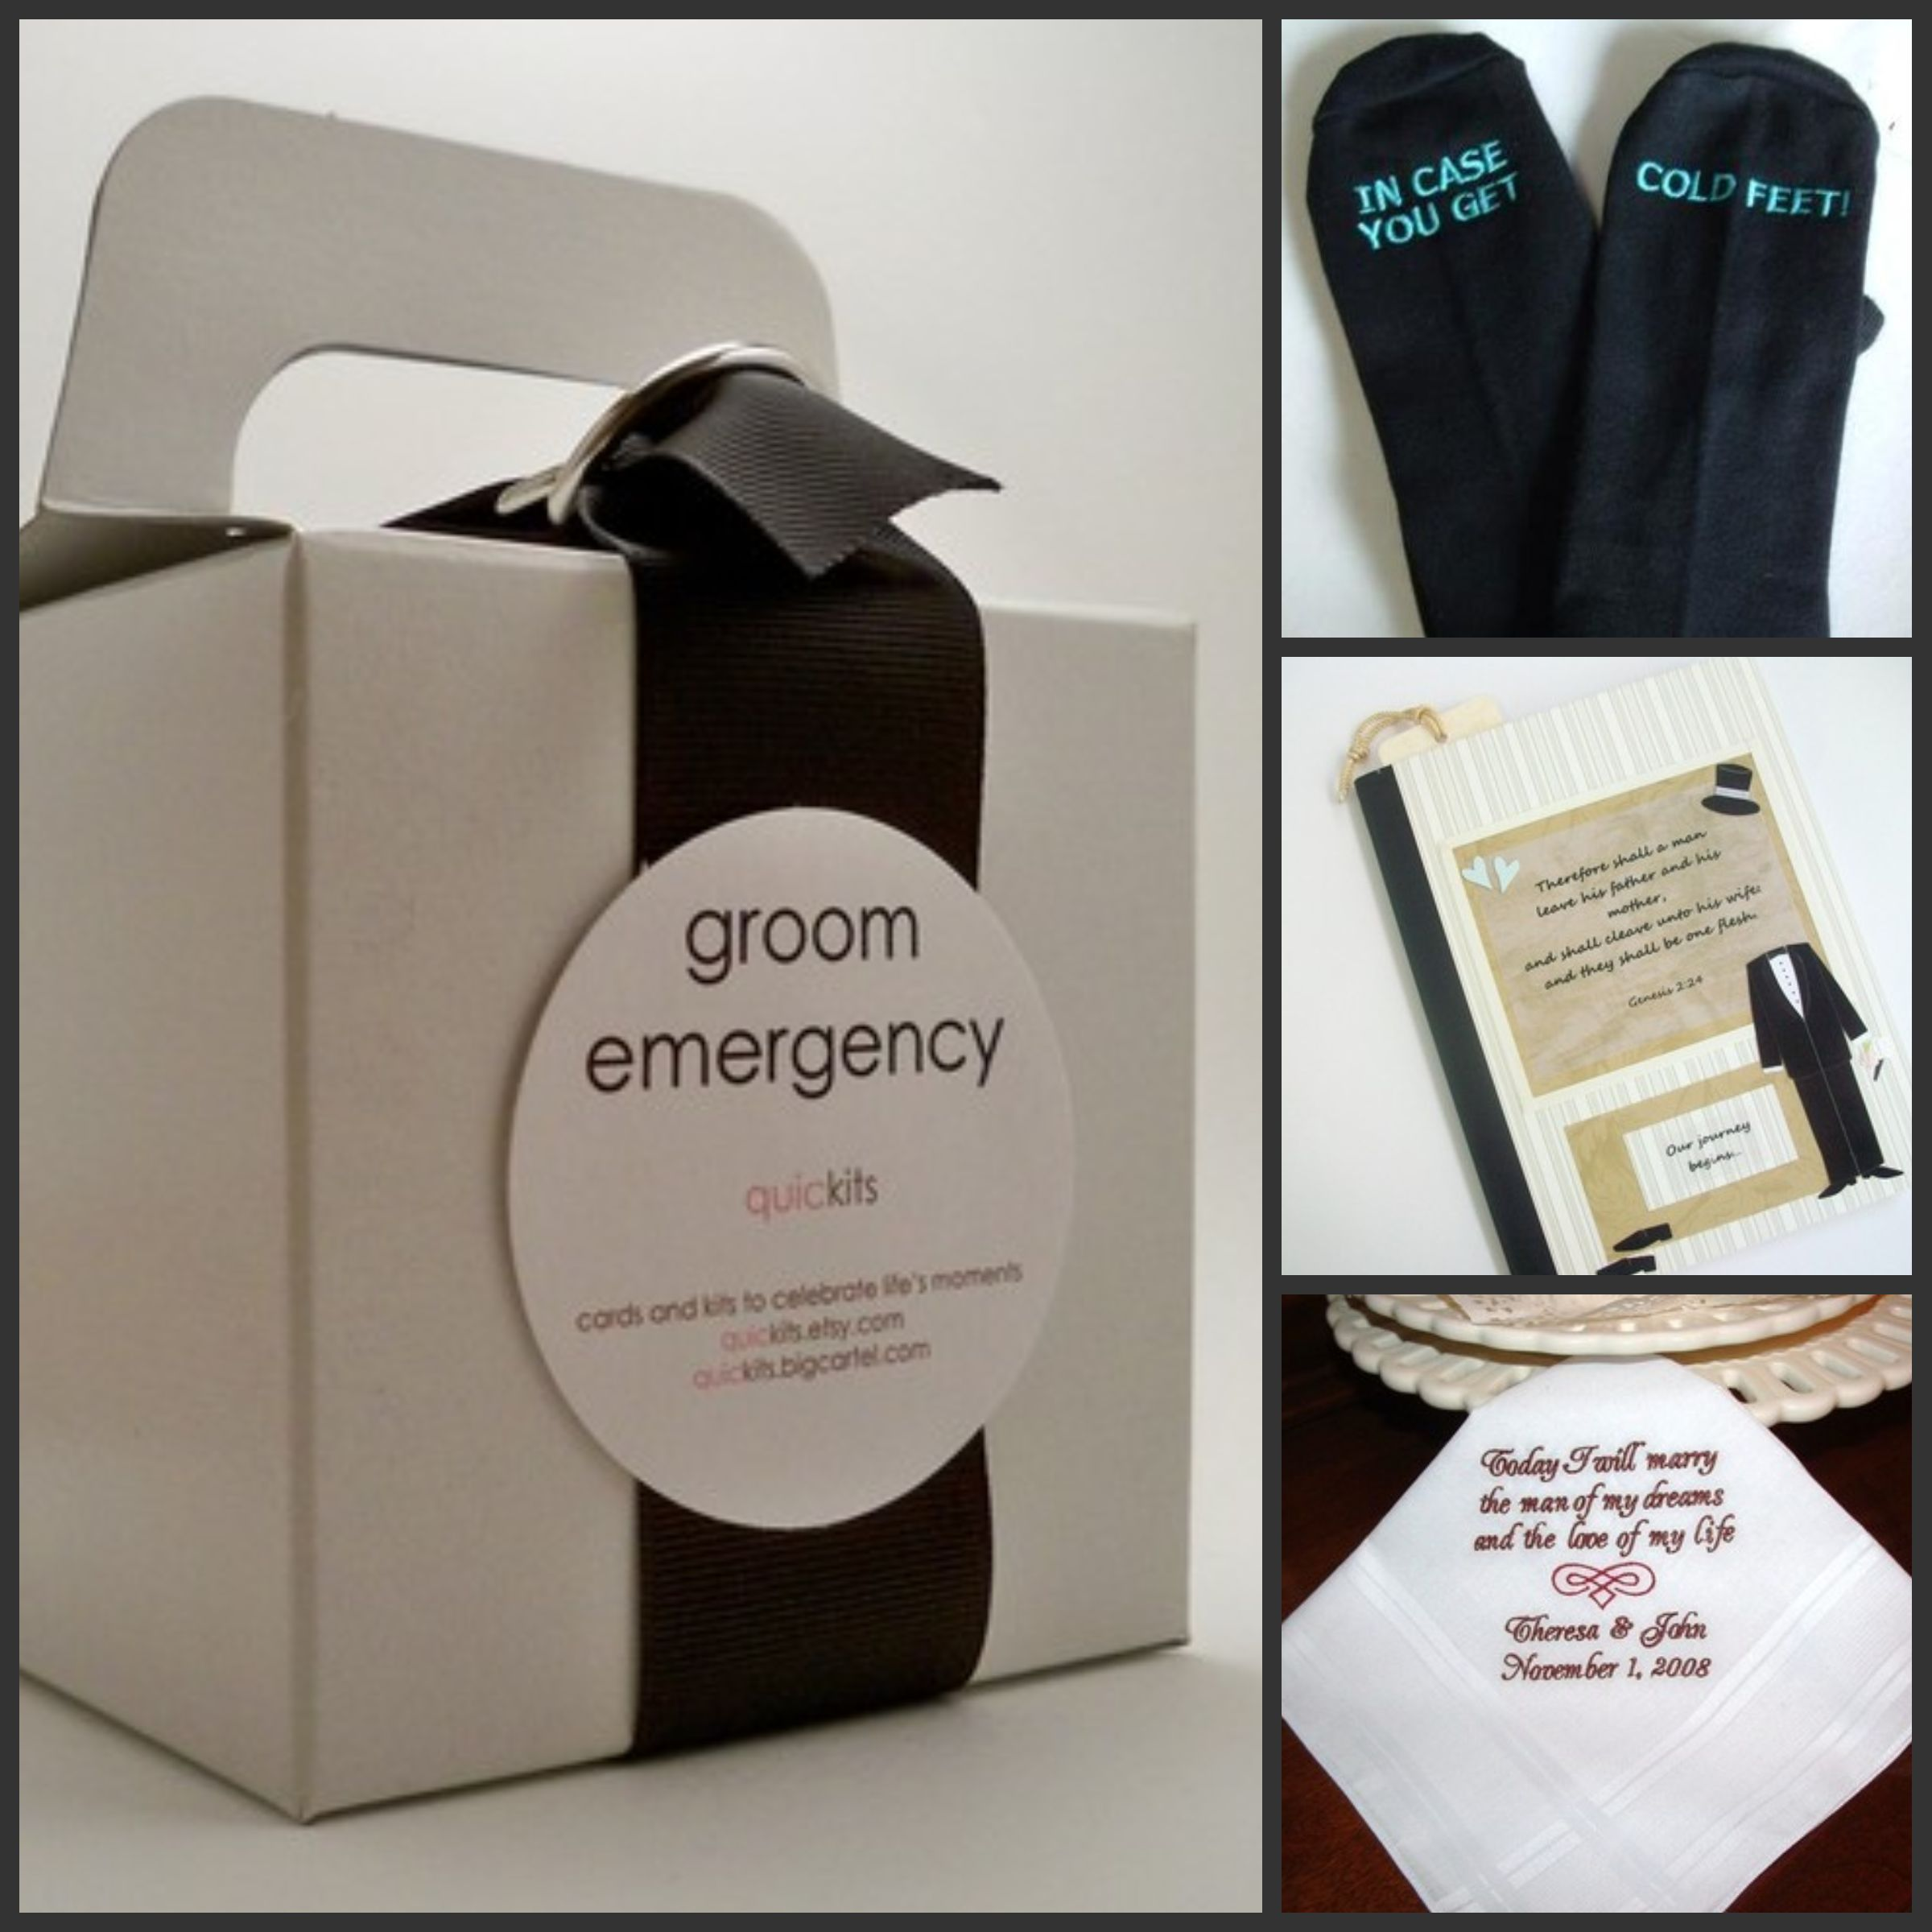 Diy Wedding Gift Ideas For Bride And Groom : personal gifts for your groom clockwise from left groom emergency kit ...